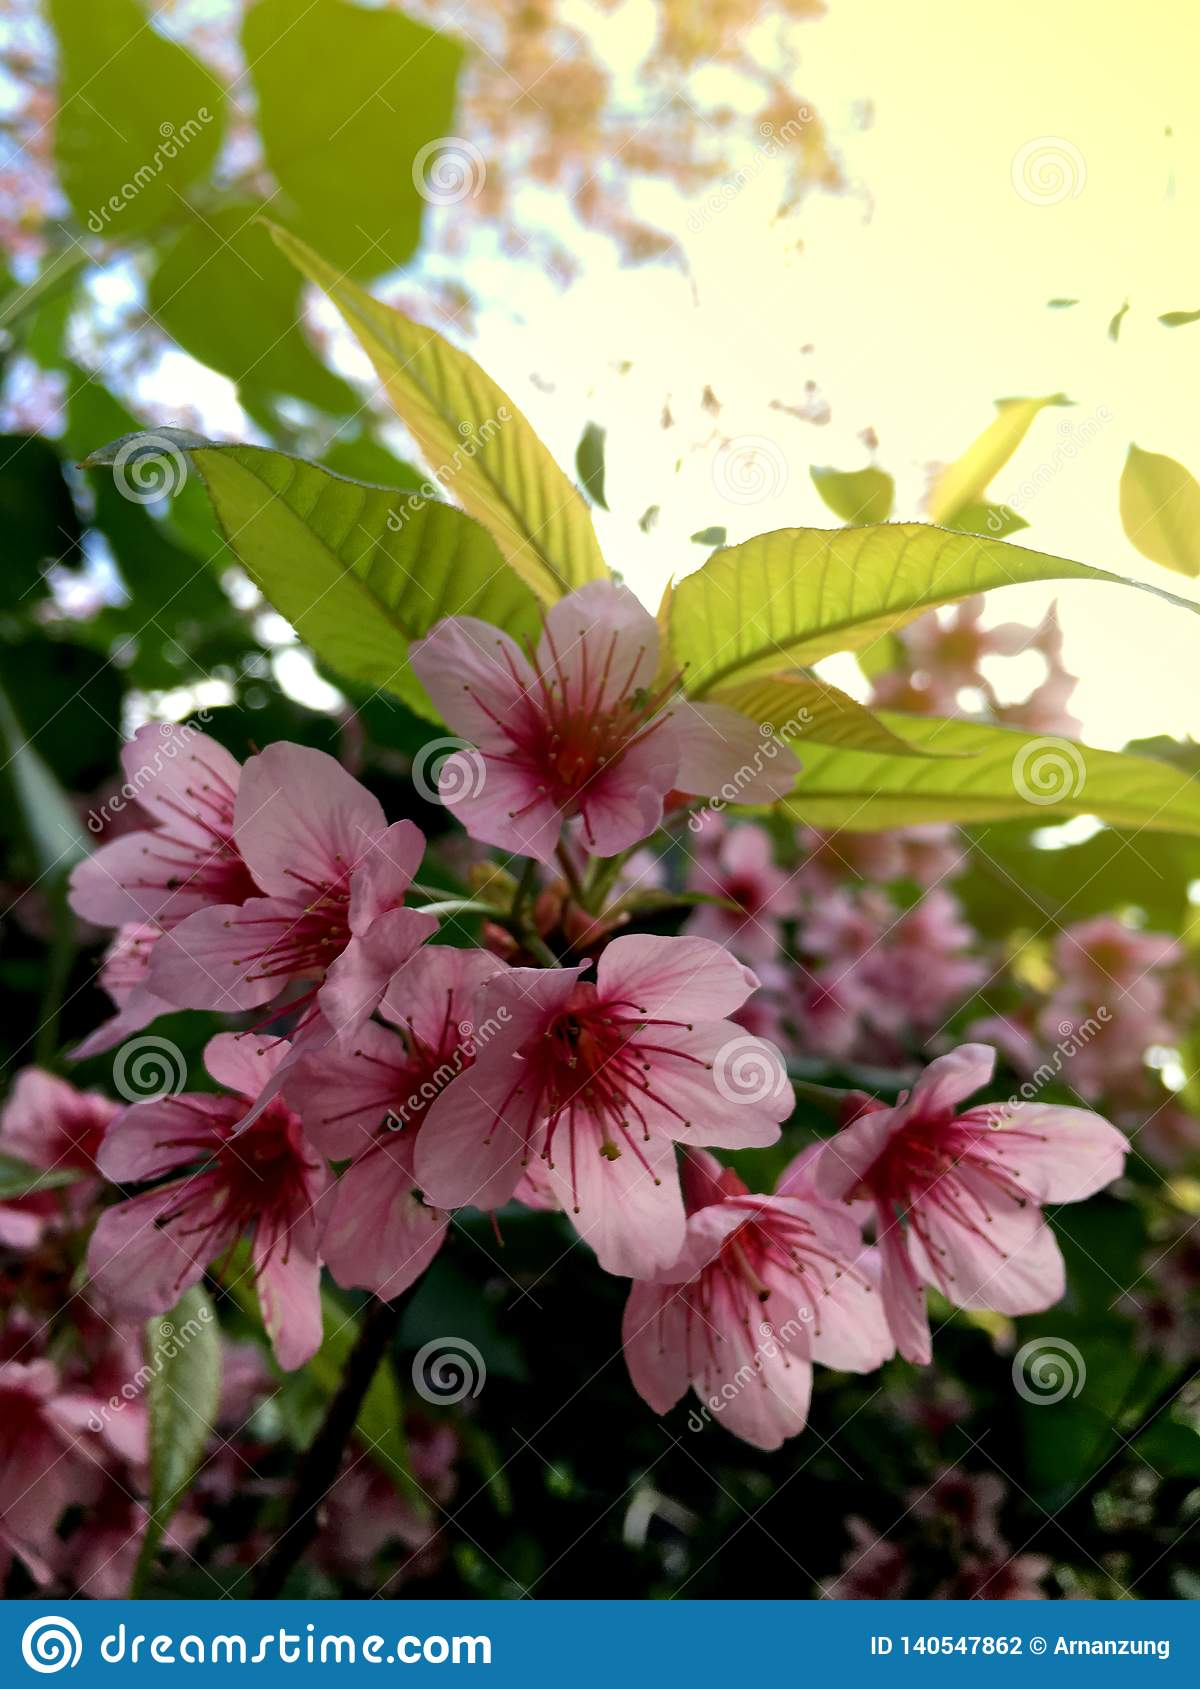 ฺBeautiful cherry blossom, Prunus cerasoides in Thailand, bright pink flowers of Sakura with soft lighting.